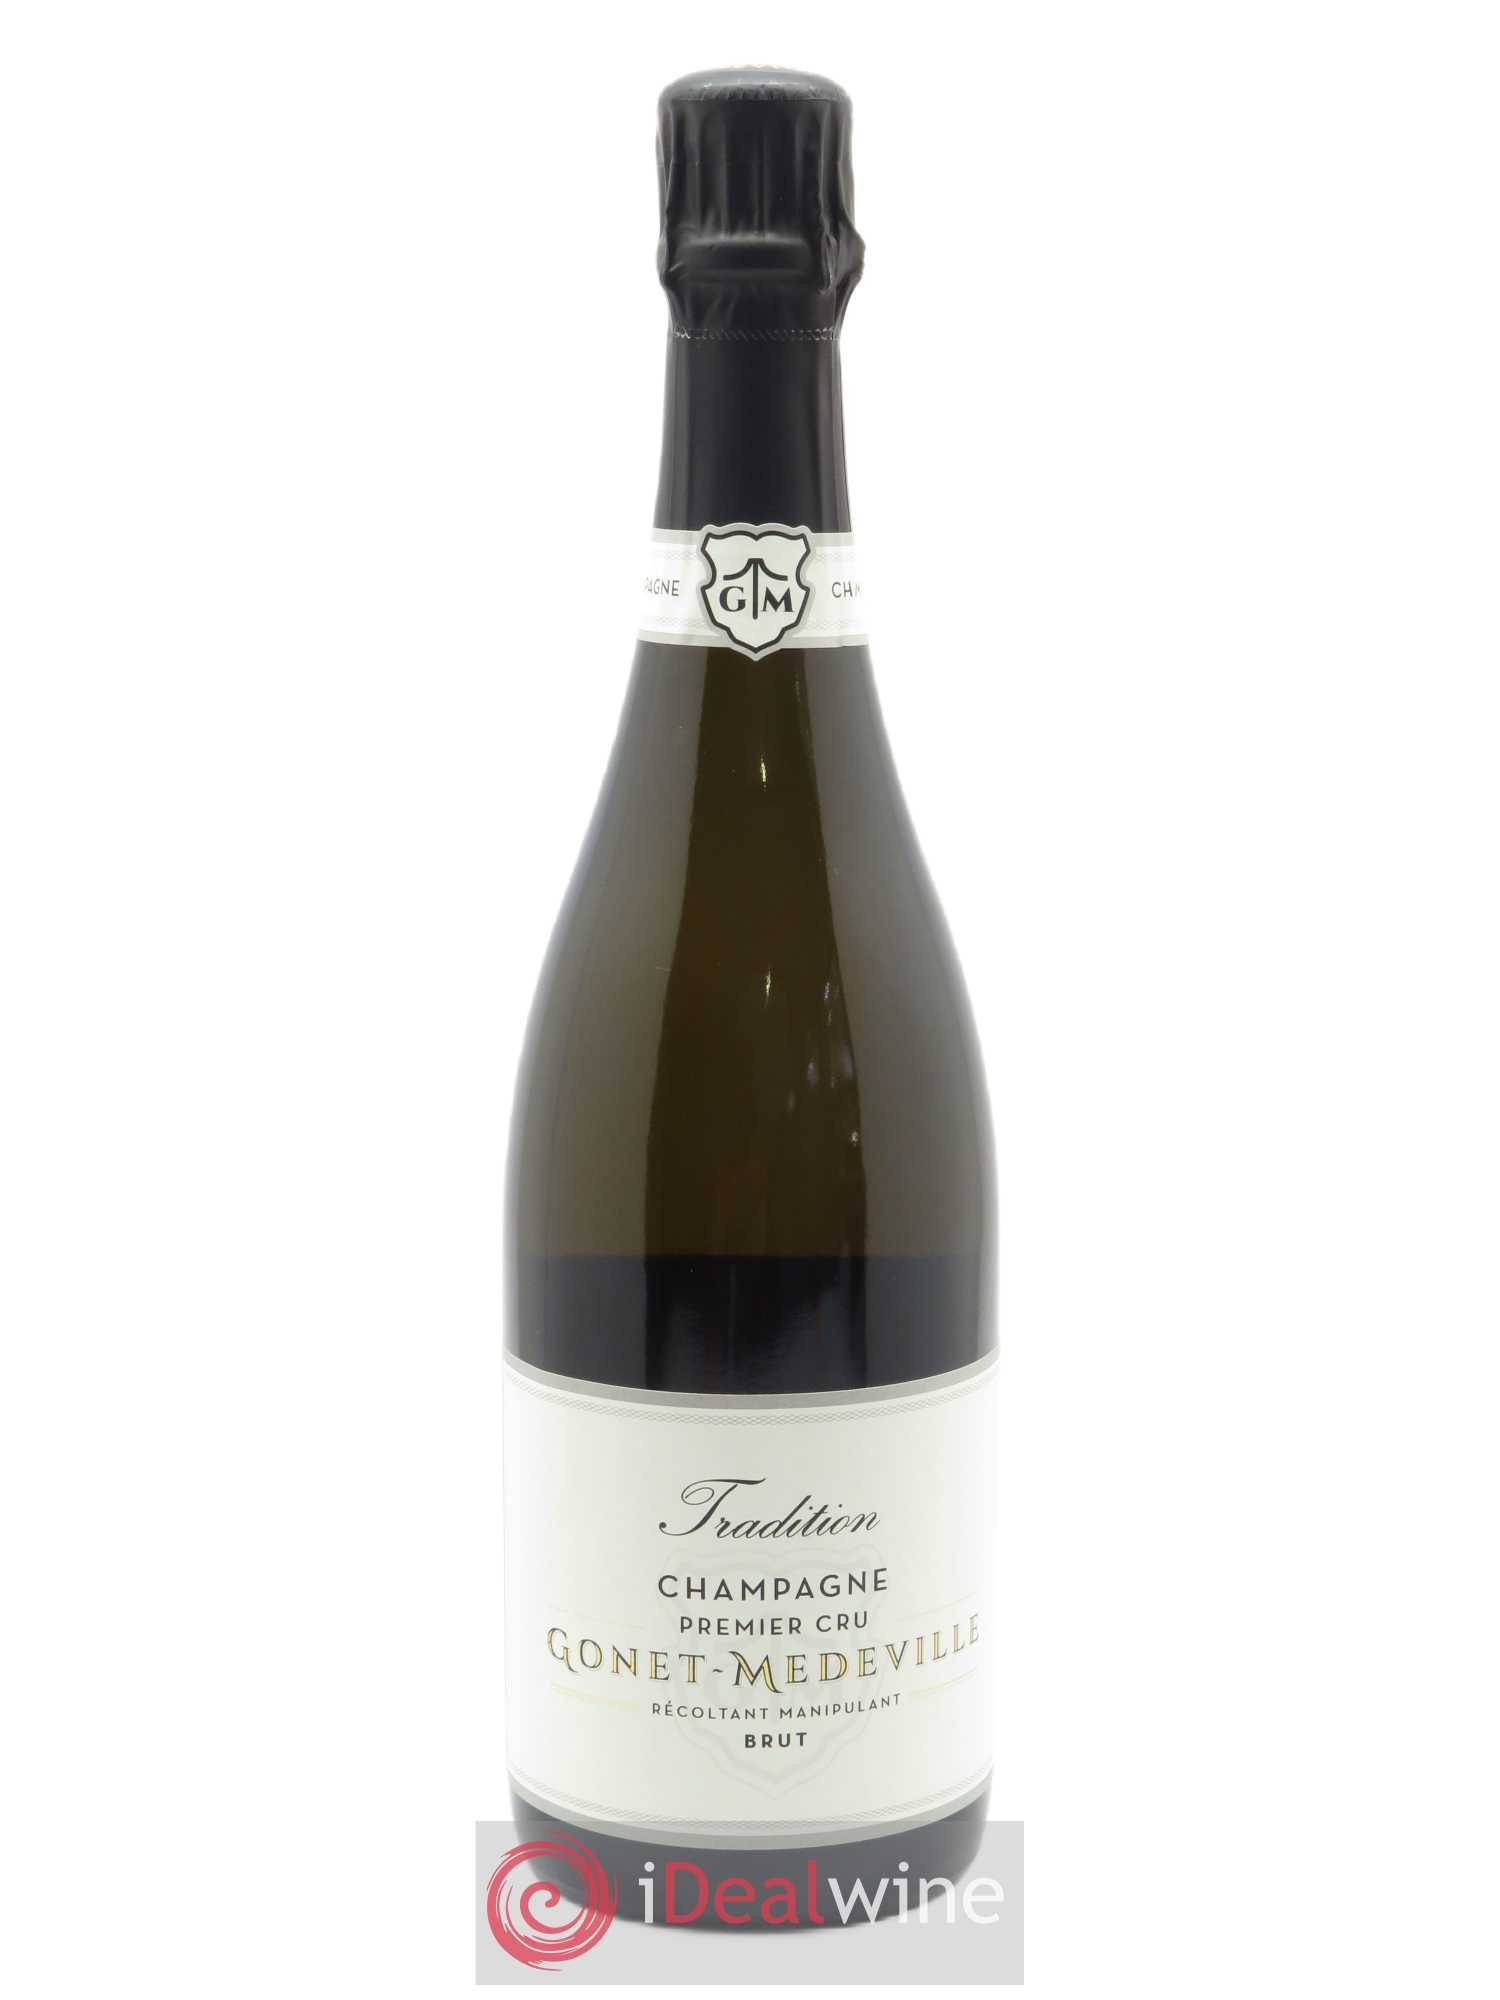 Tradition Premier Cru Brut Vignobles Gonet-Medeville   - Lot of 1 Bottle